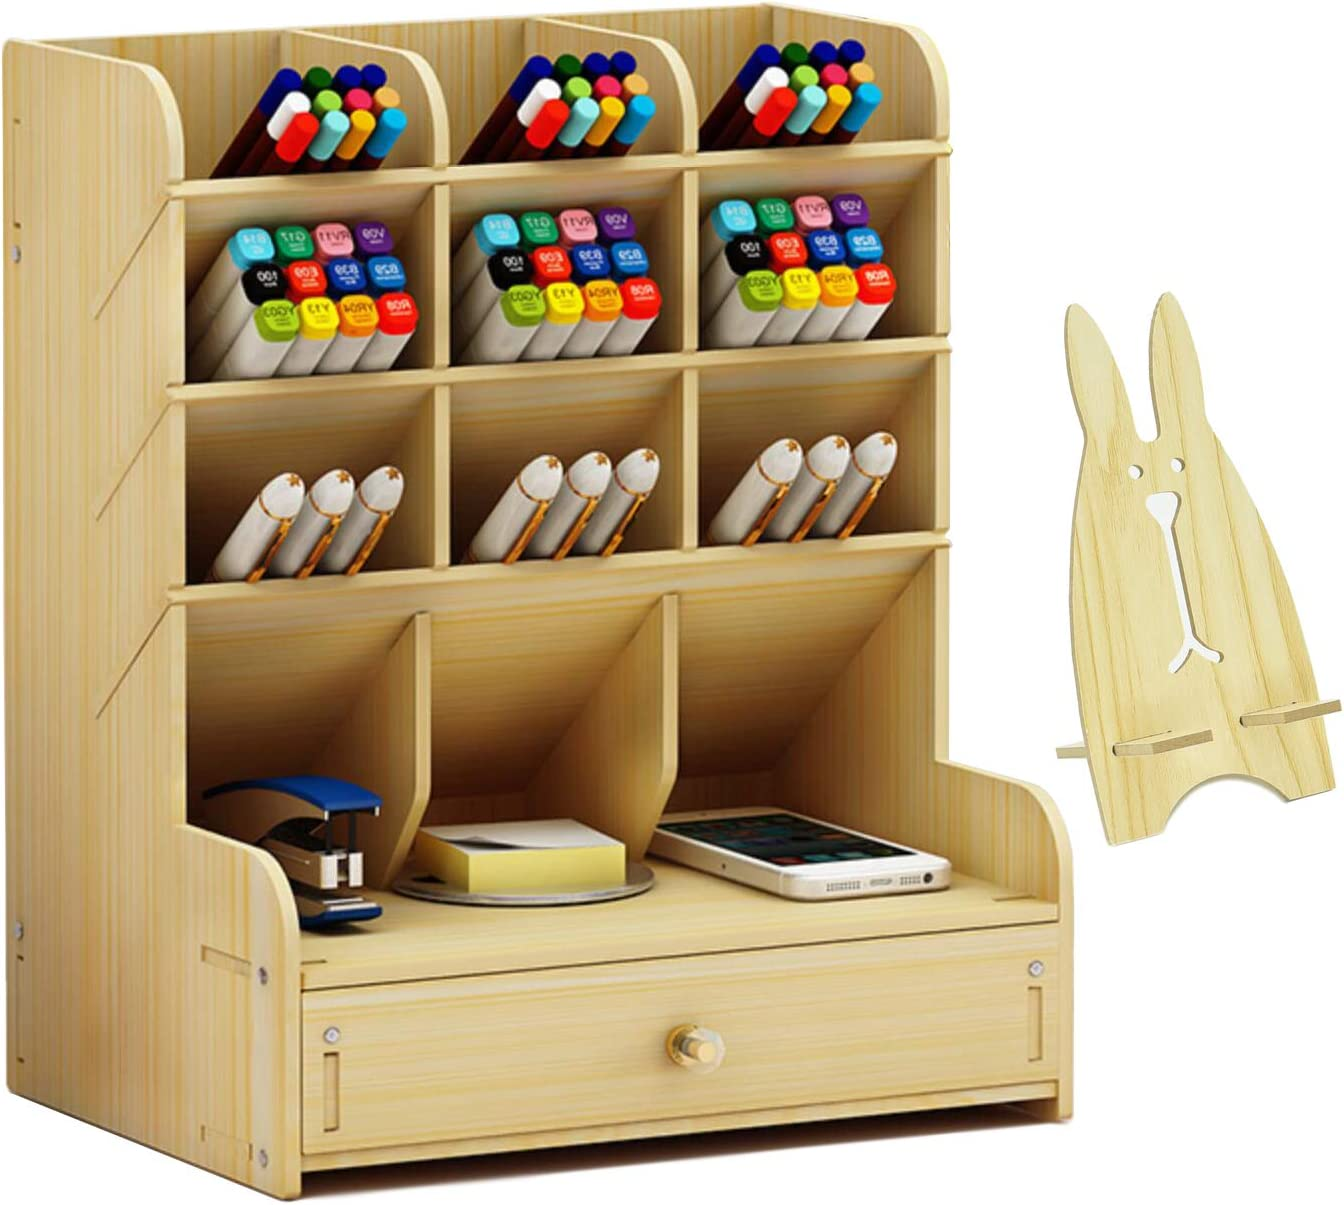 Wood Desk Organizer With Drawer, Multipurpose Pencil/pen Holder, Wooden Desktop Stationary Organizer Shelf for Art Supplies, Easy Assembly Office Organization, Small Accessories Storage Table (White)